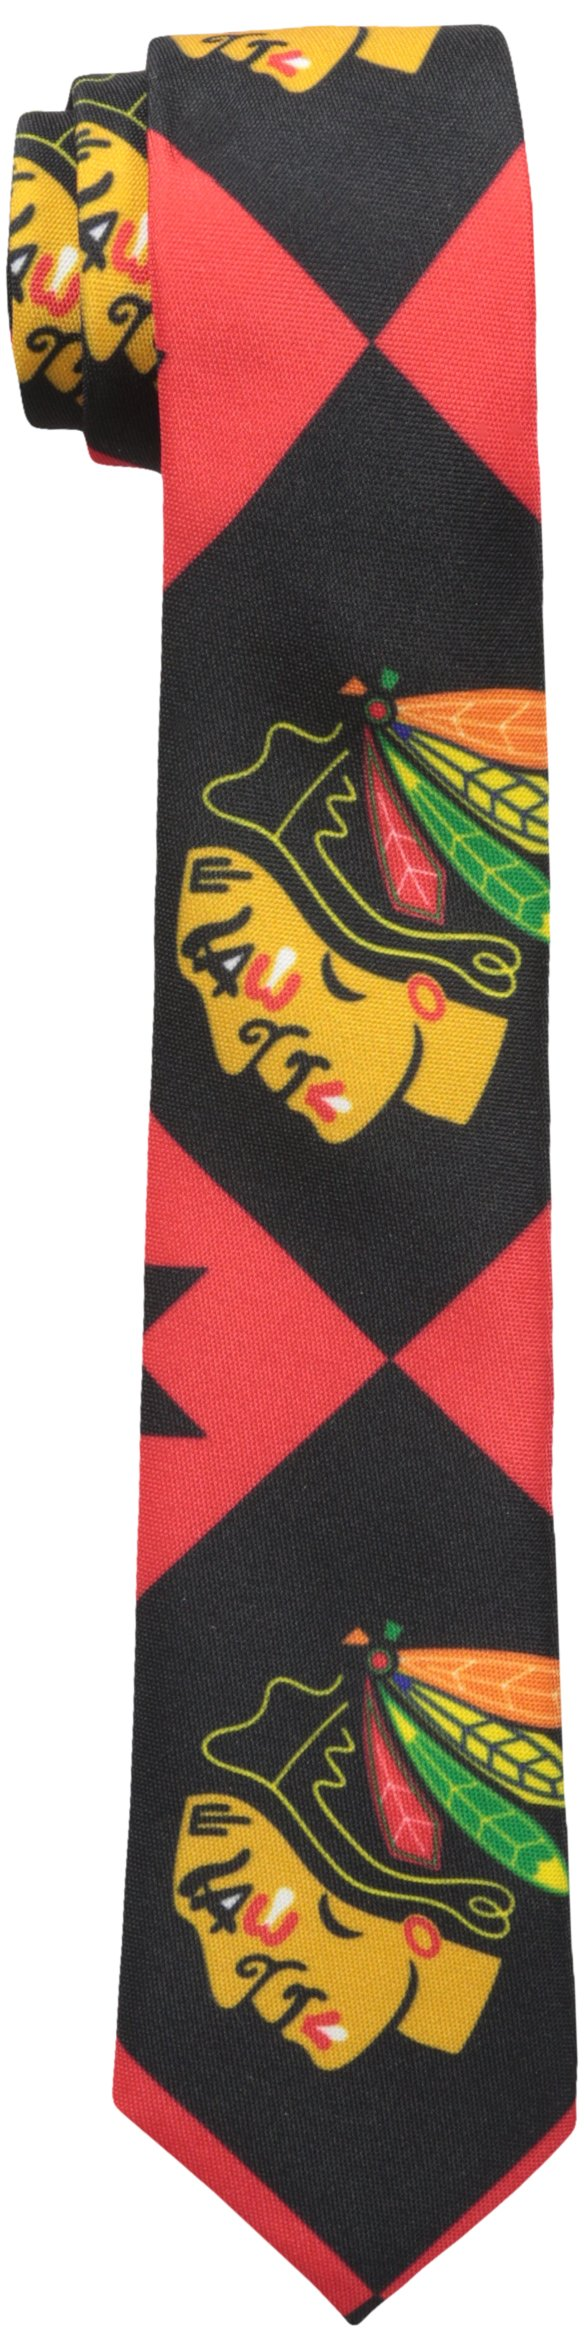 FOCO Chicago Blackhawks Patches Ugly Printed Tie - Mens by FOCO